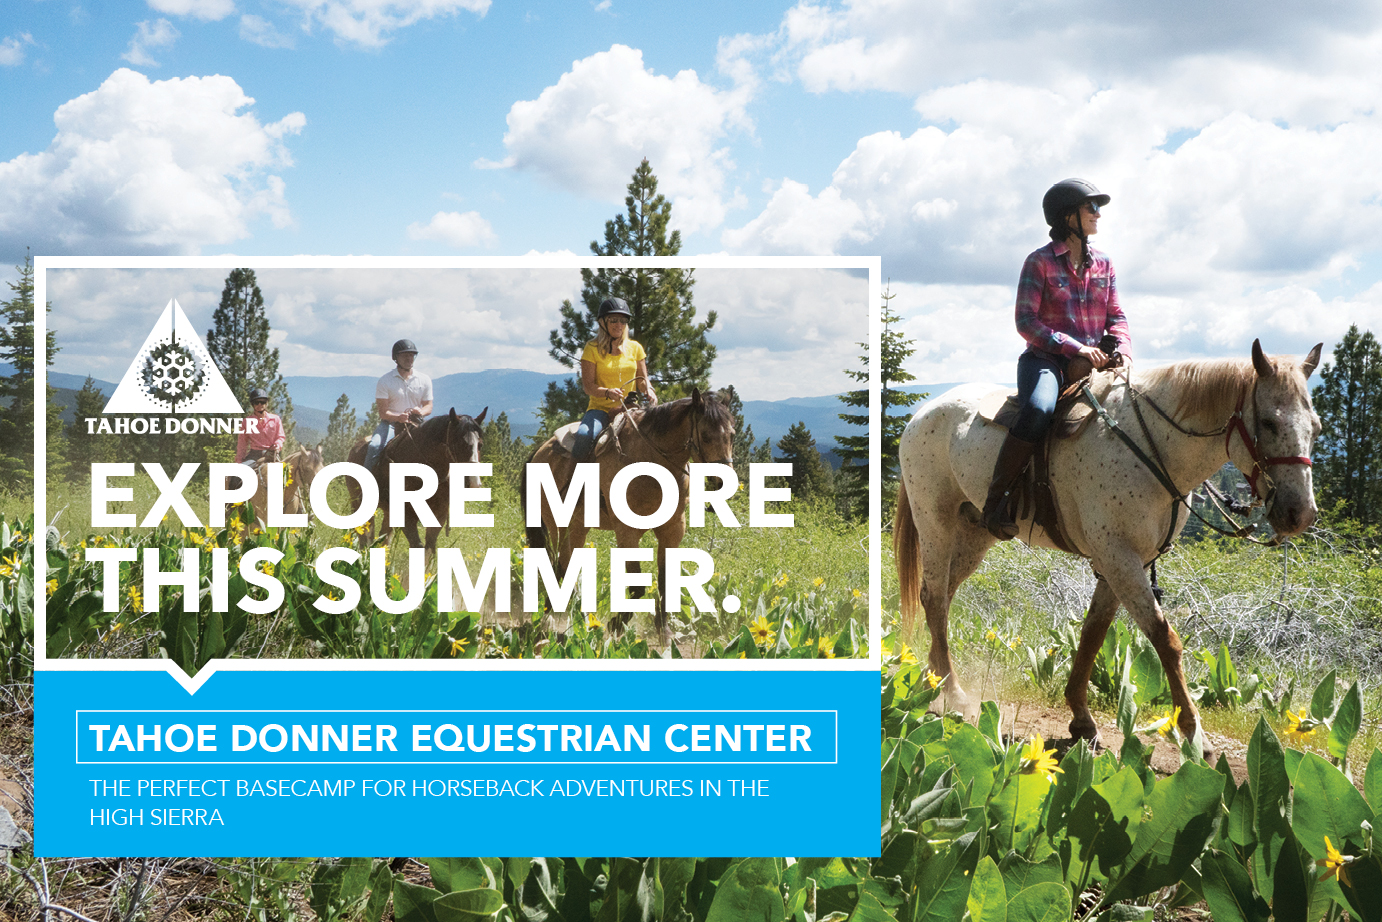 SummerCampaign_Equestrian_WebPage_1382x922 v1 image